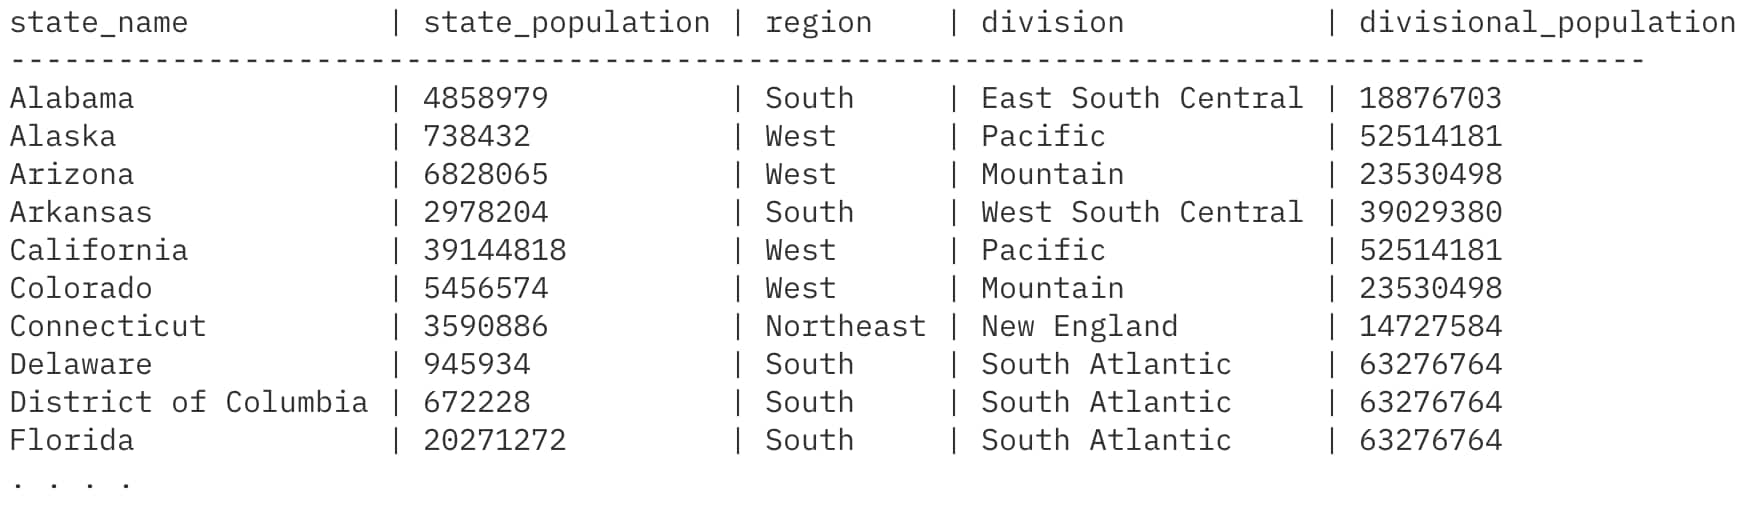 Now we're looking at state-level data, broken out by region and division, with a population summary at the division level: